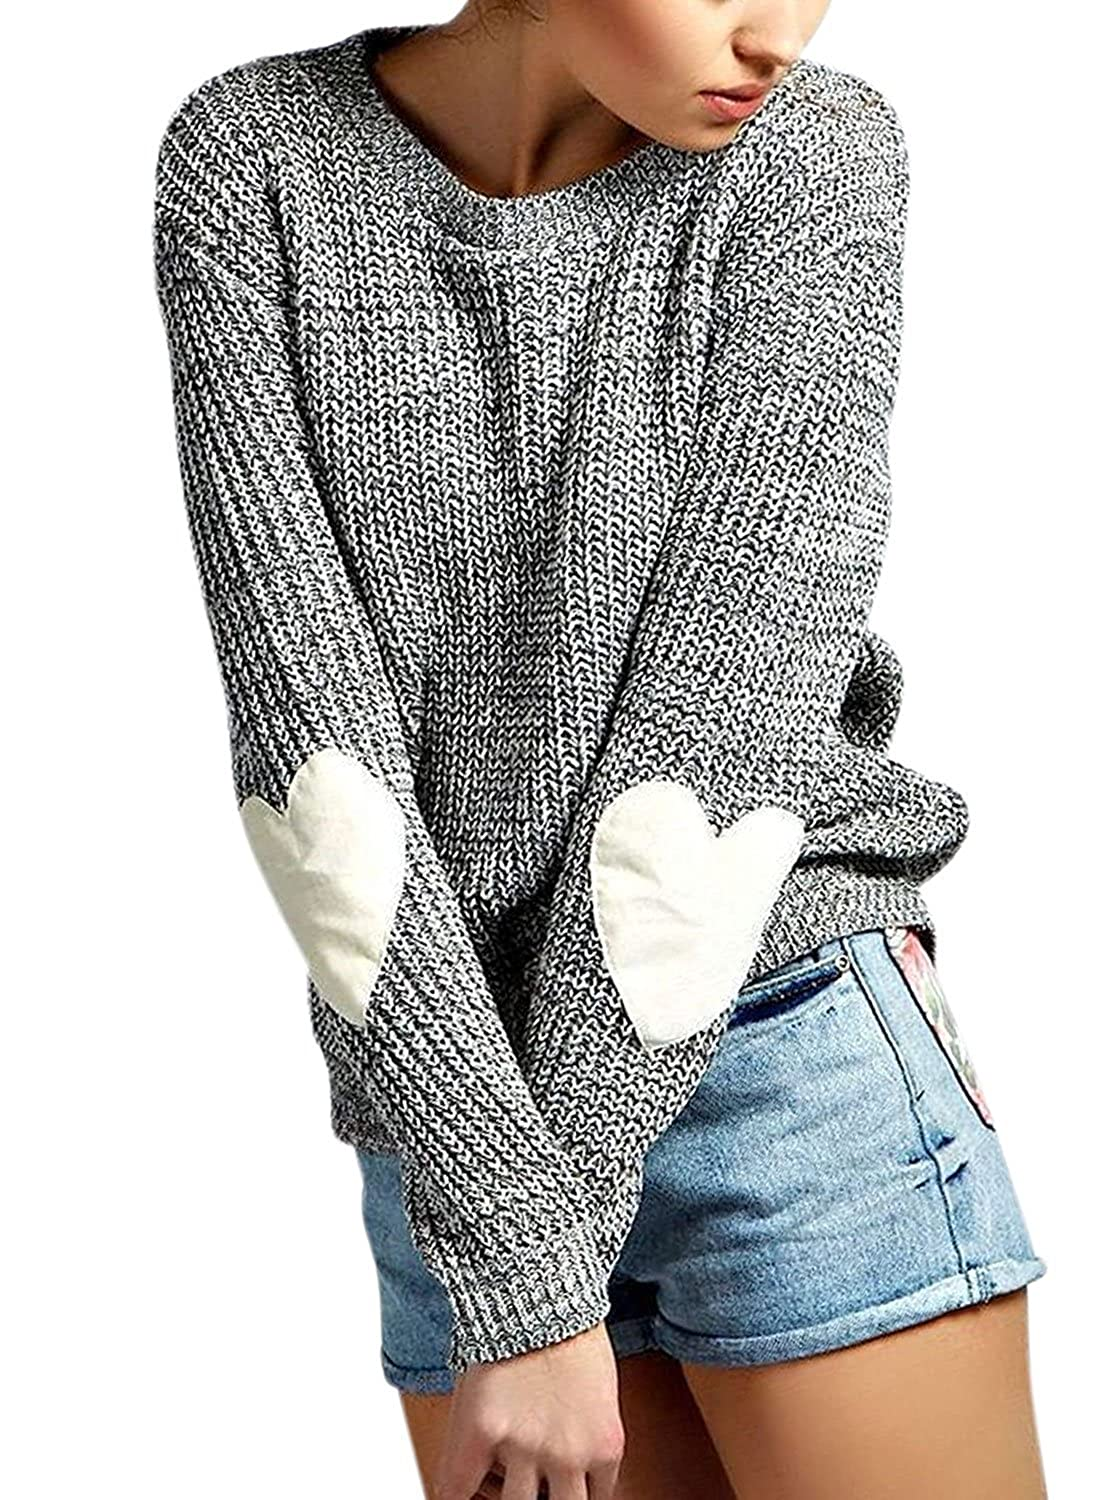 Hunleathy Women's Cute Cable Knit Sweater Solid Warm Pullover(Grey)XL